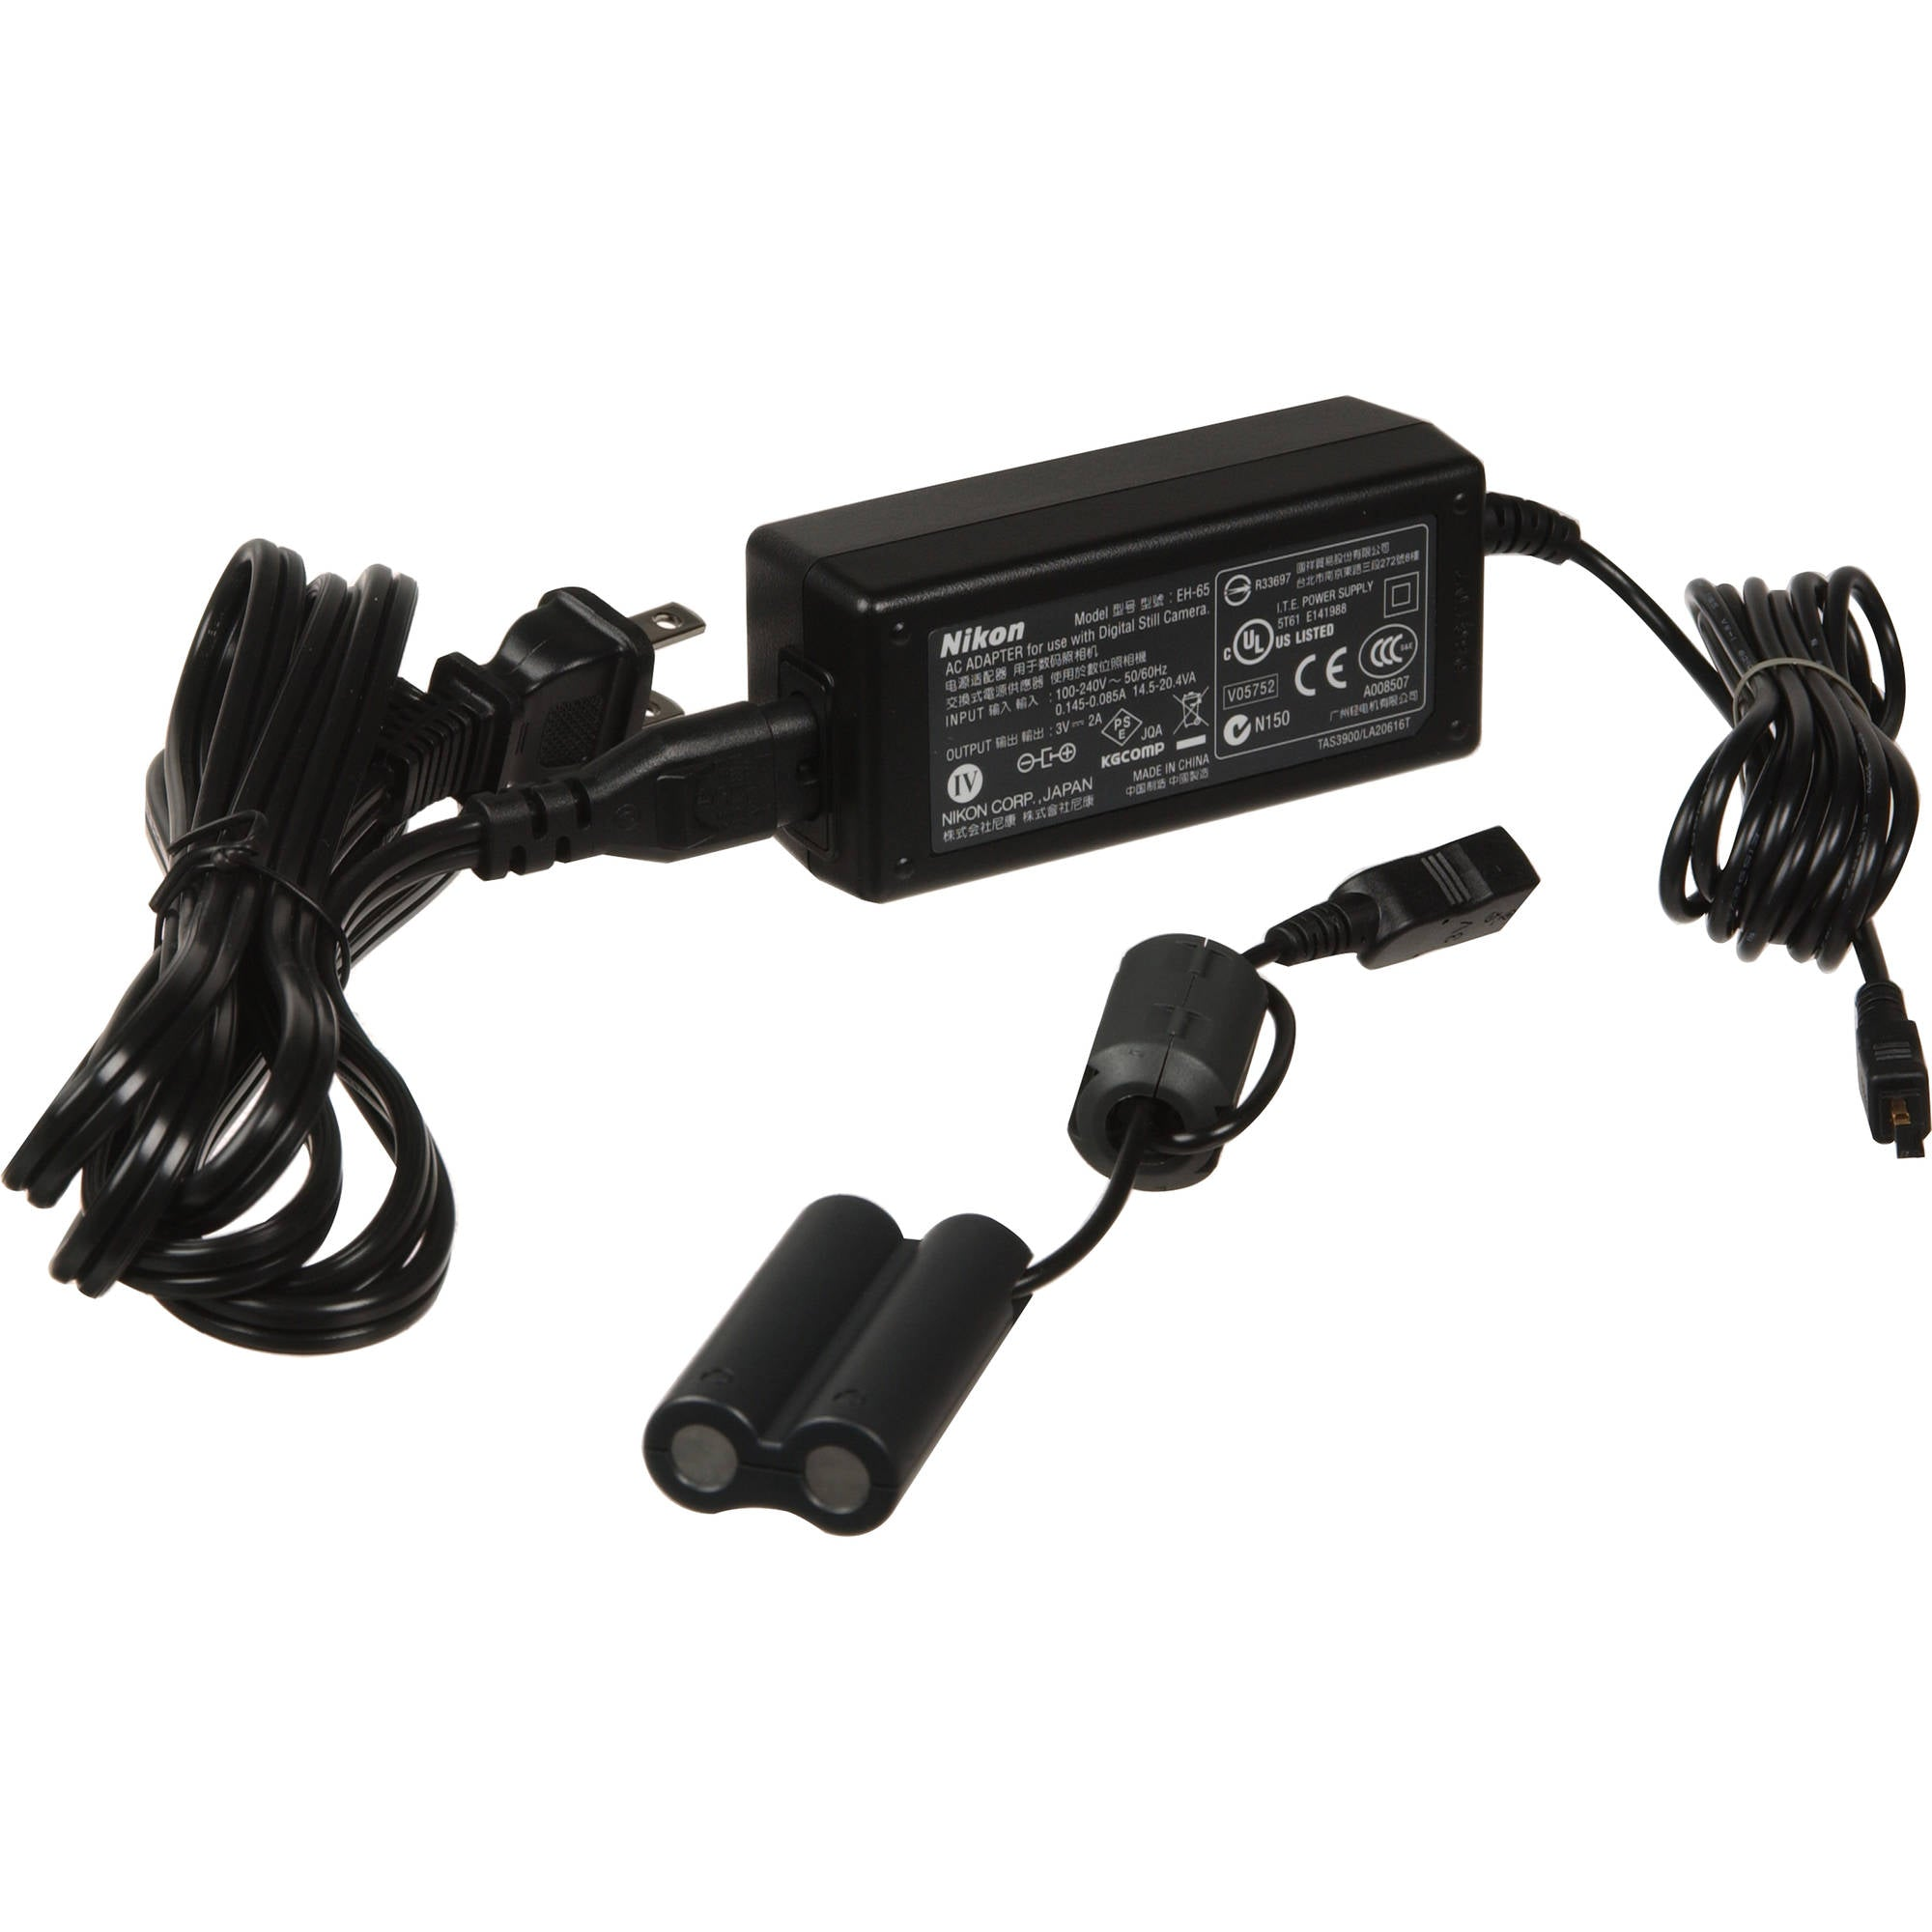 Nikon EH-65A AC Adapter for the Nikon Coolpix L Series Digital Cameras